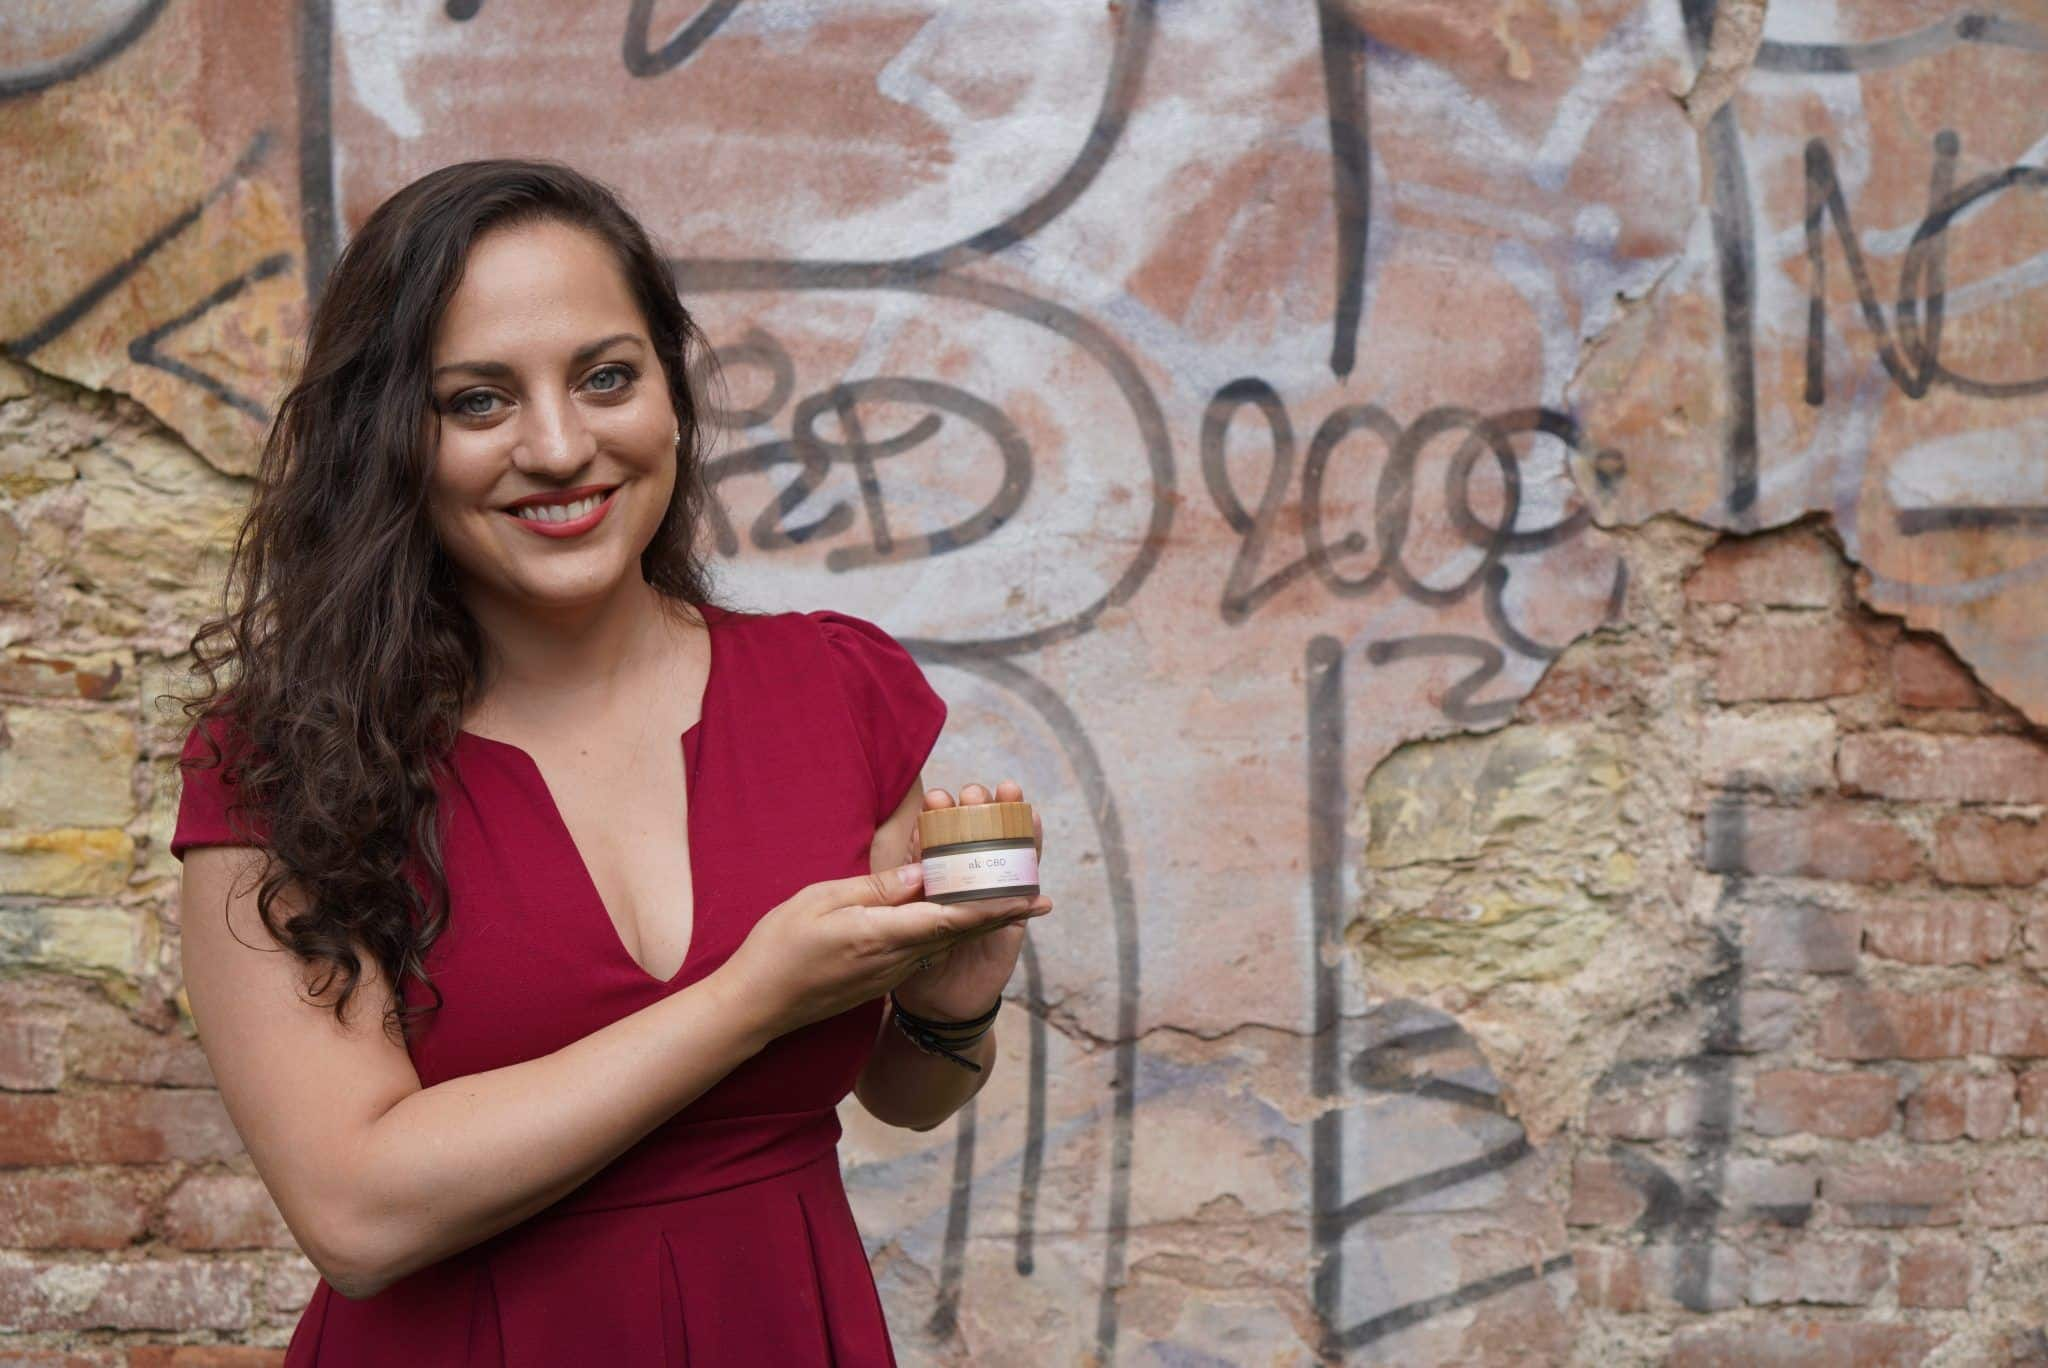 Kate wears a red dress and stands in front of a pink graffitied wall holding a jar of soothing salve.